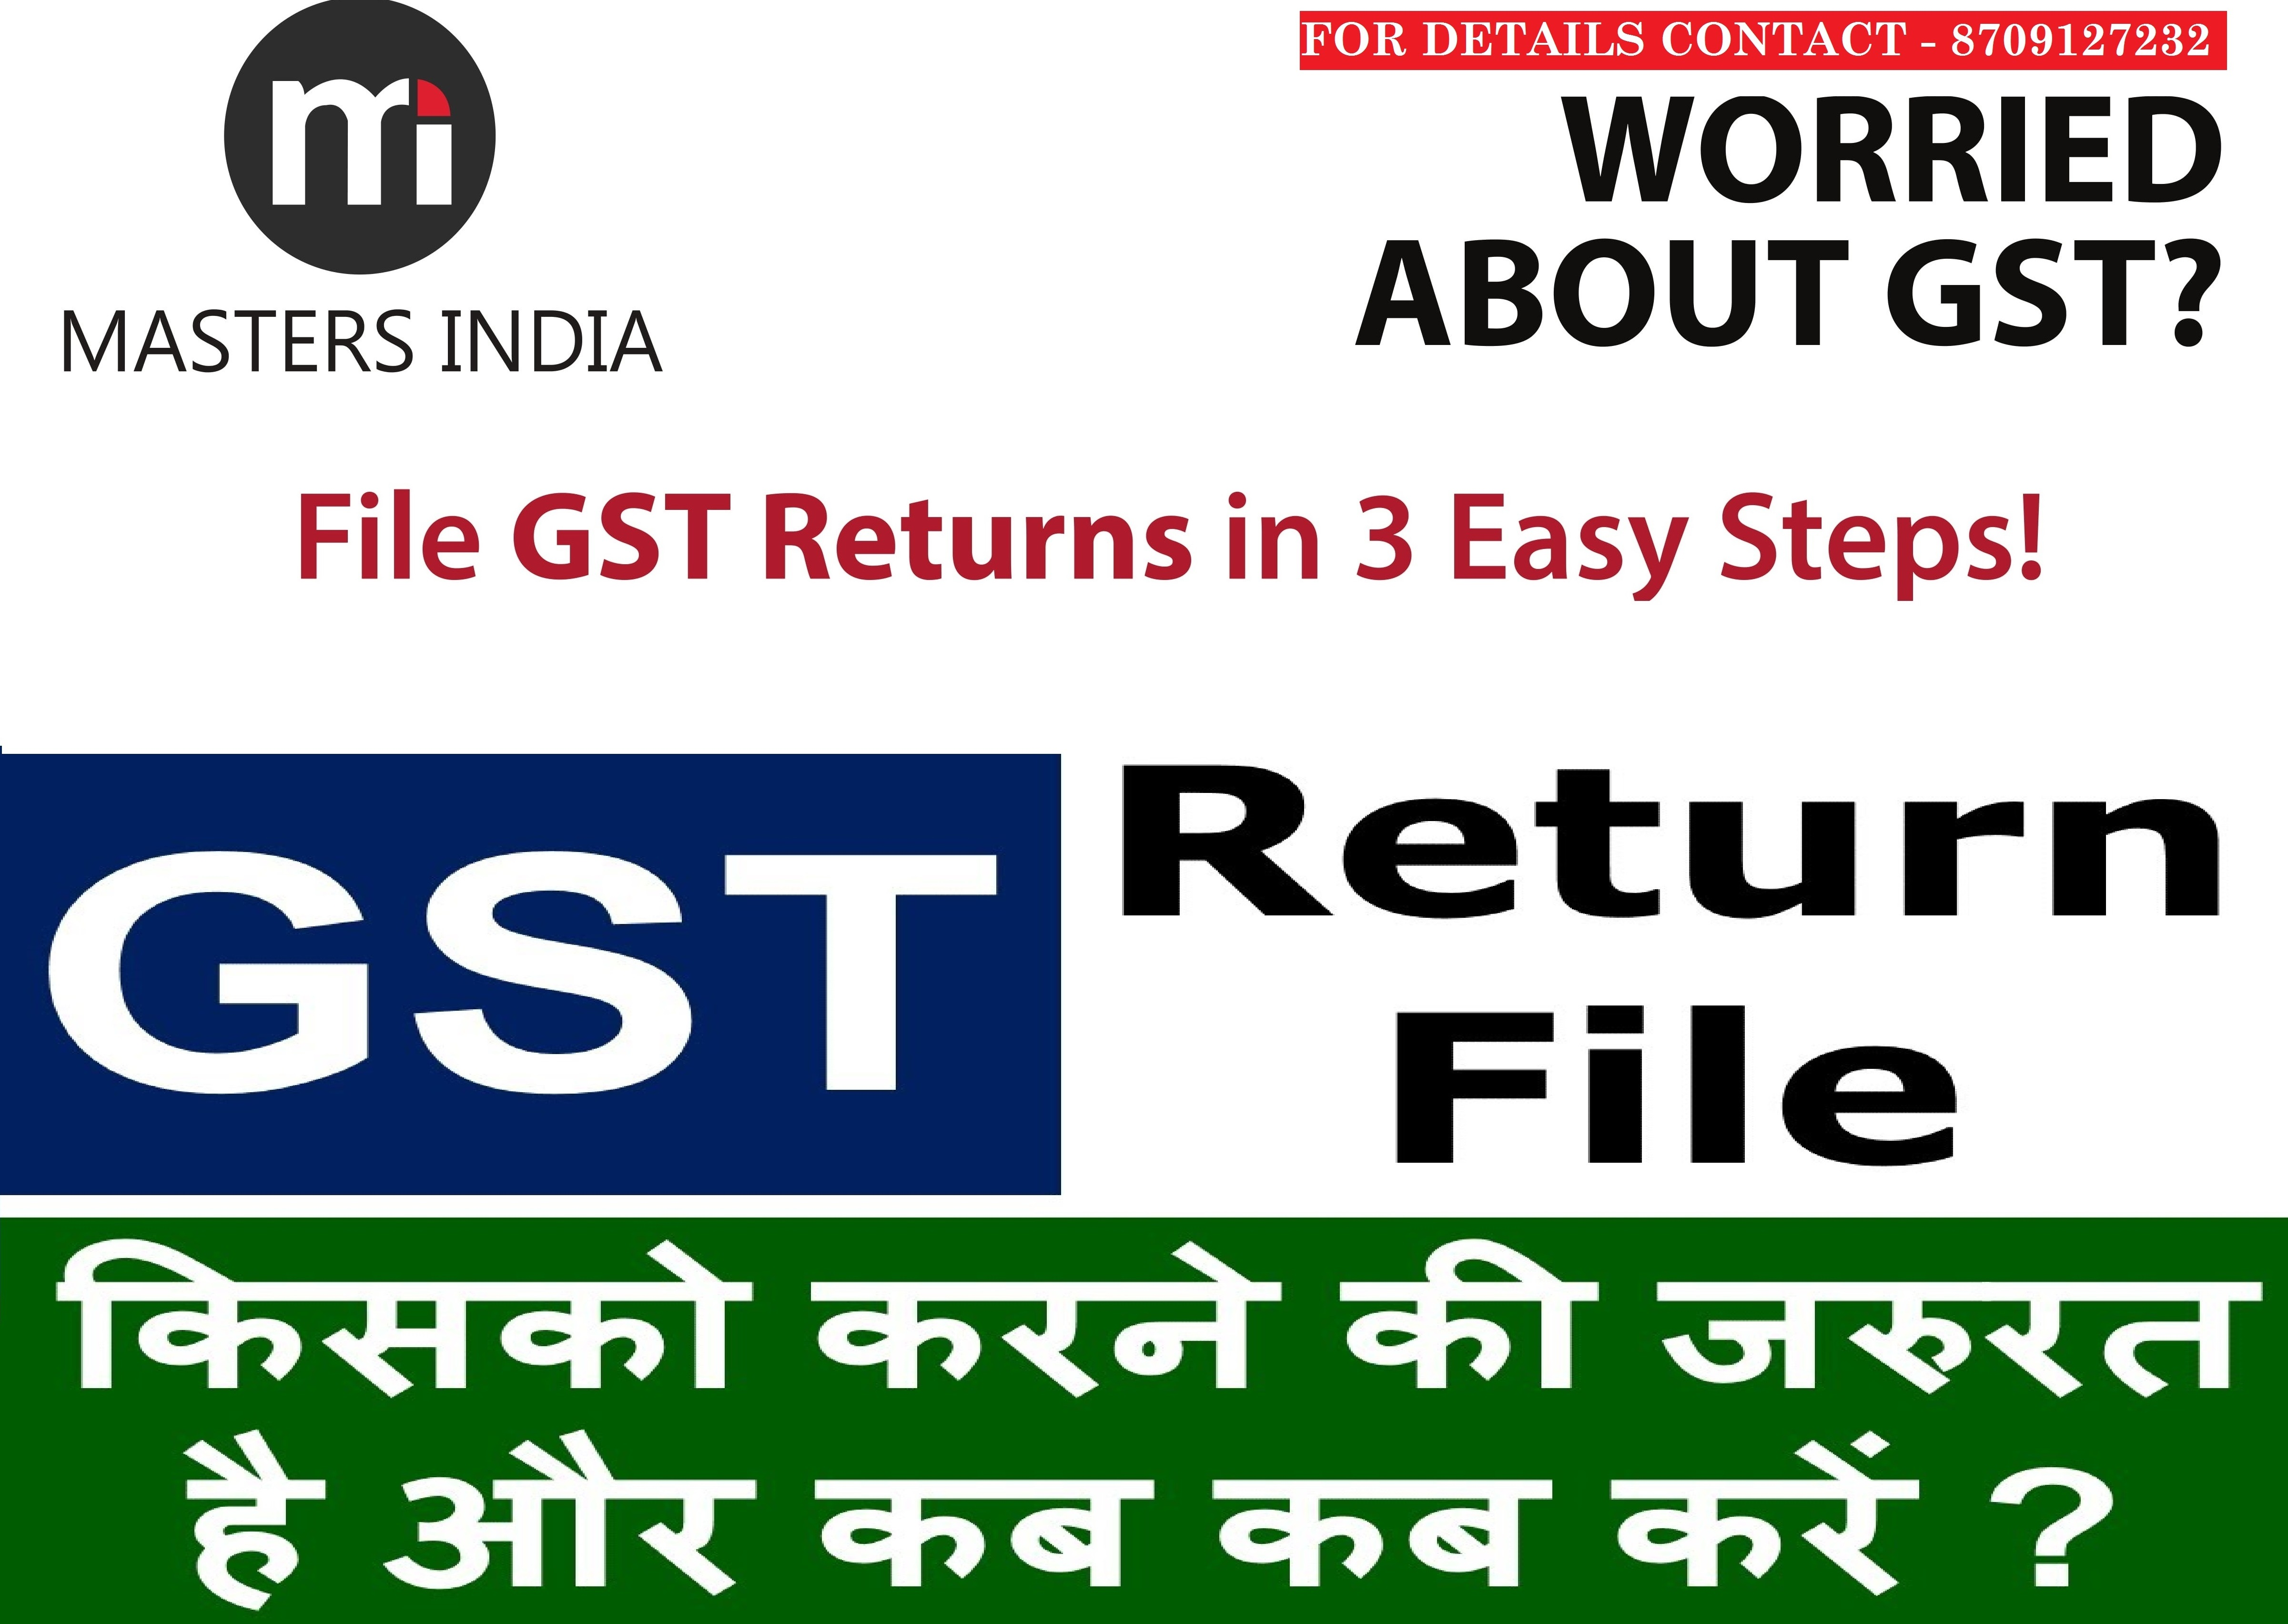 GST-BANNER-FOT-MASTER-INDIA Online Form Uco Bank on online banking registration, account number passbook, educational loans schemes, account number start, account number check,